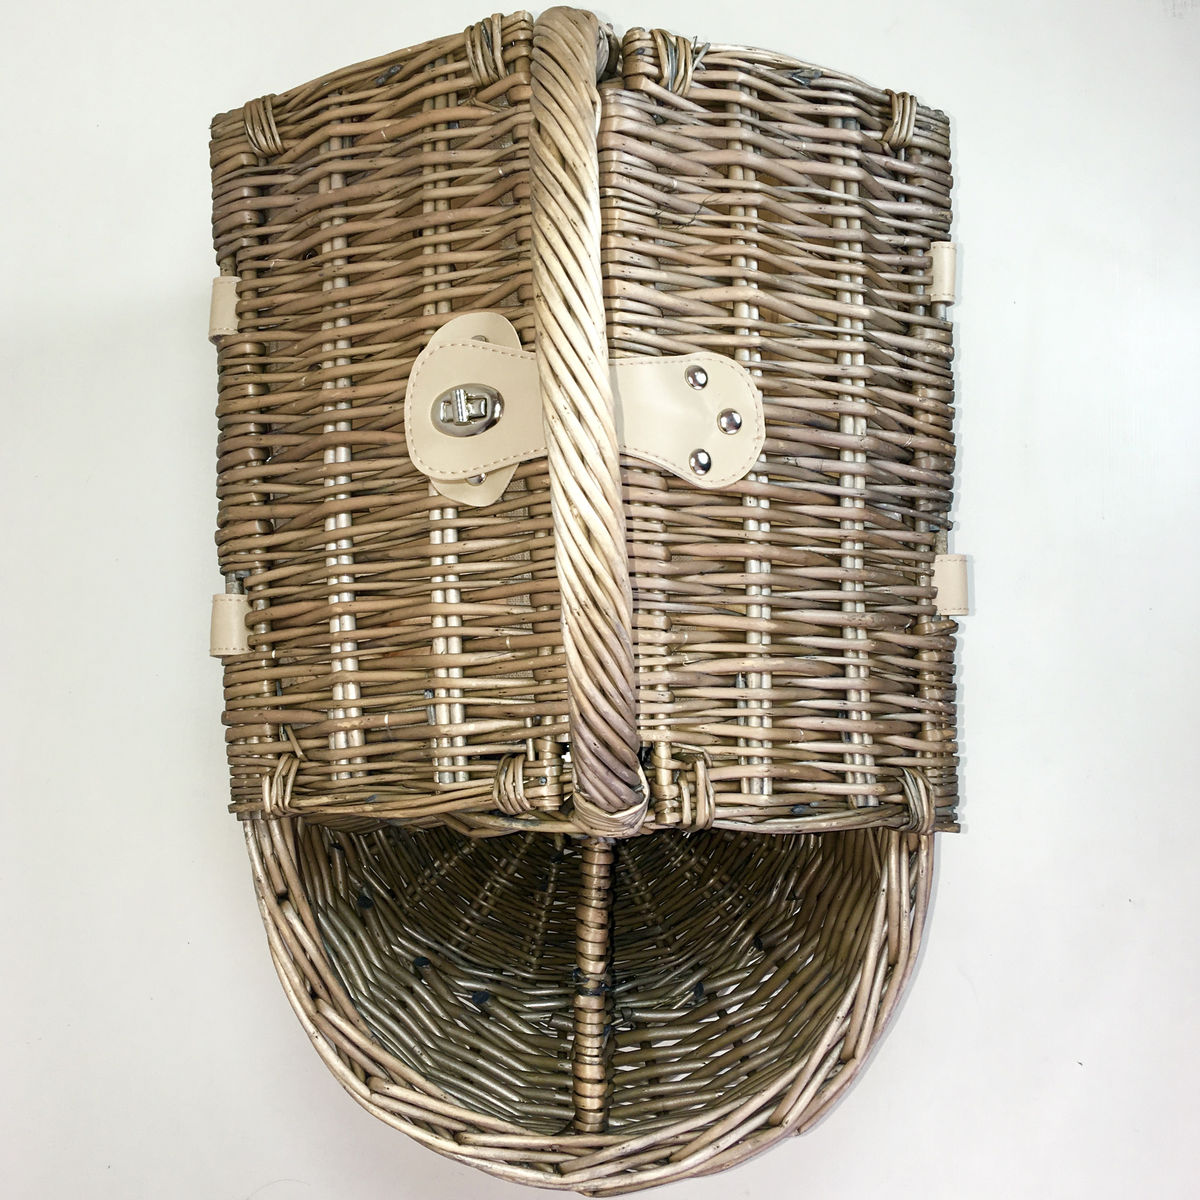 Personalised Two Person Boat Hamper Picnic Basket - FREE GIFT WRAP & UK DELIVERY - product images  of